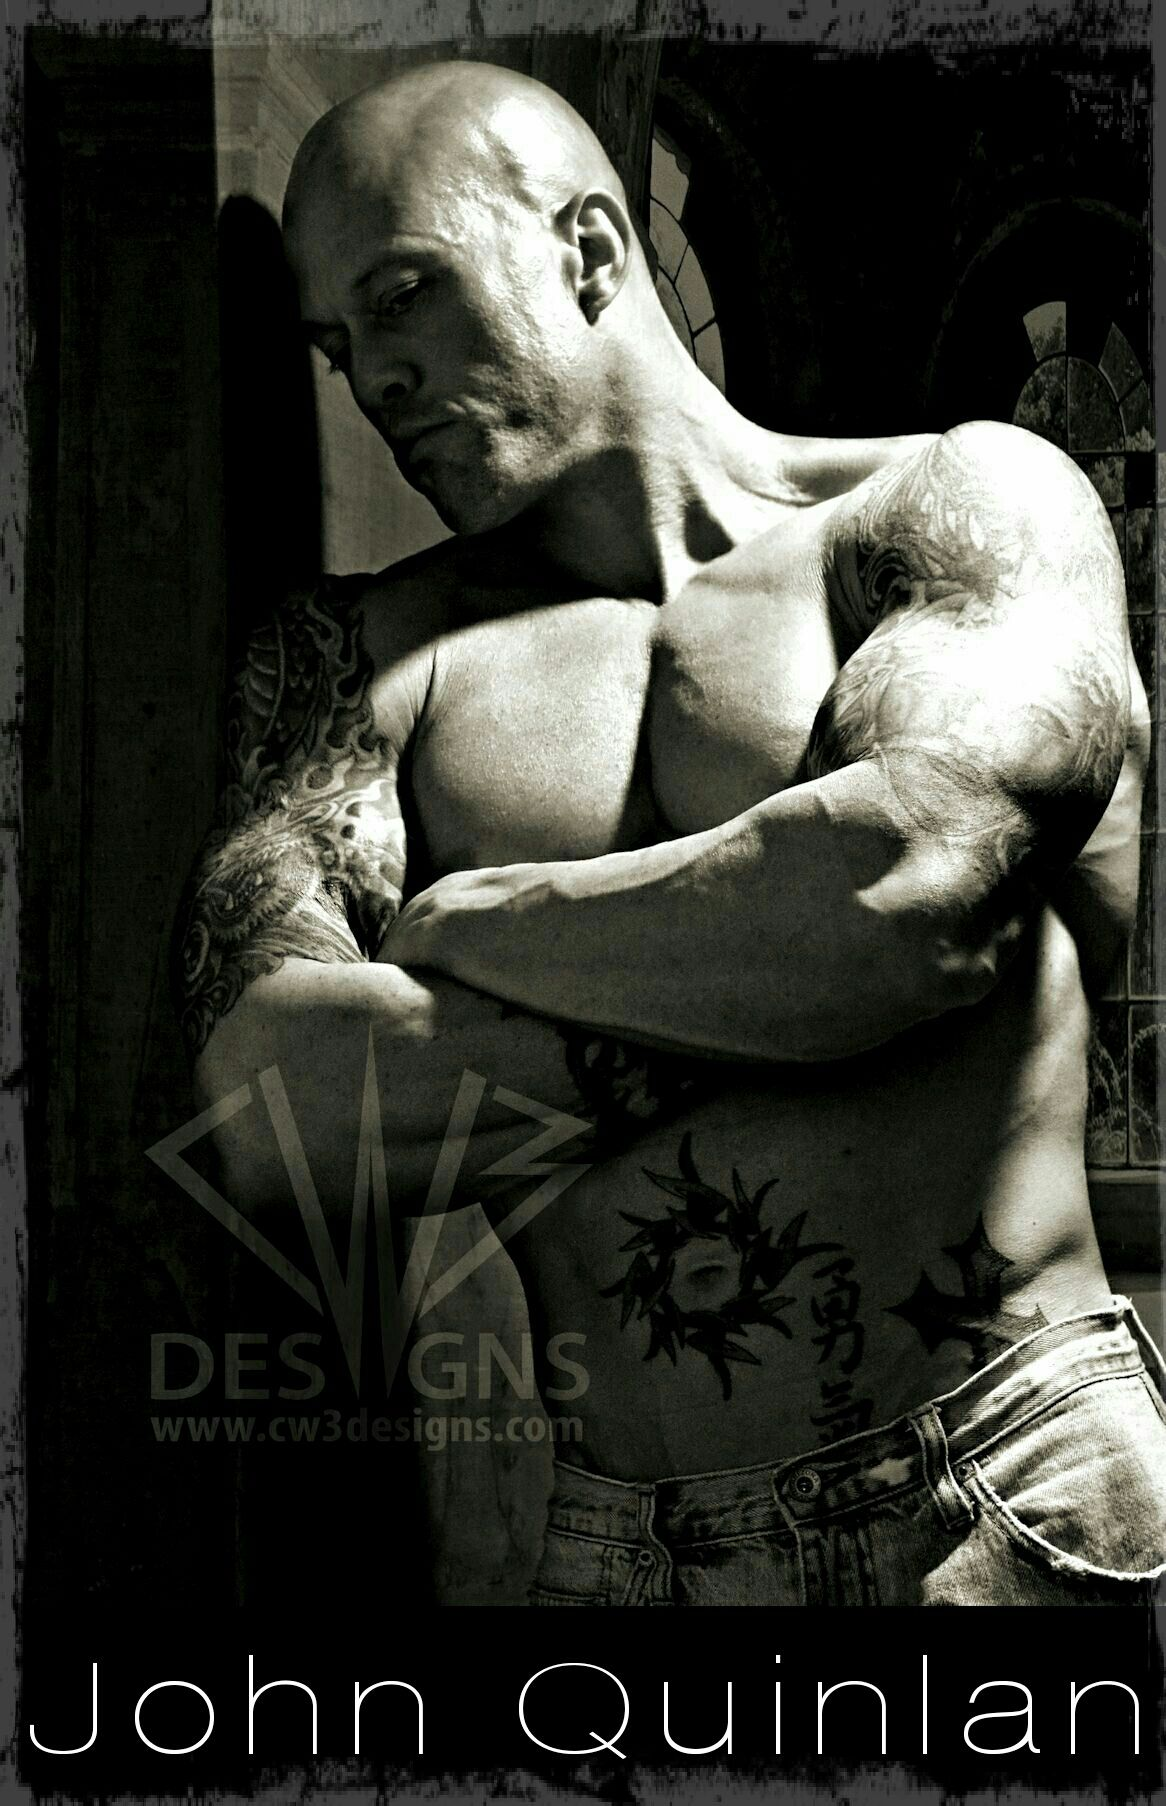 Actor & Physique Cover Model John Joseph Quinlan by Claudia Bost #JohnQuinlan